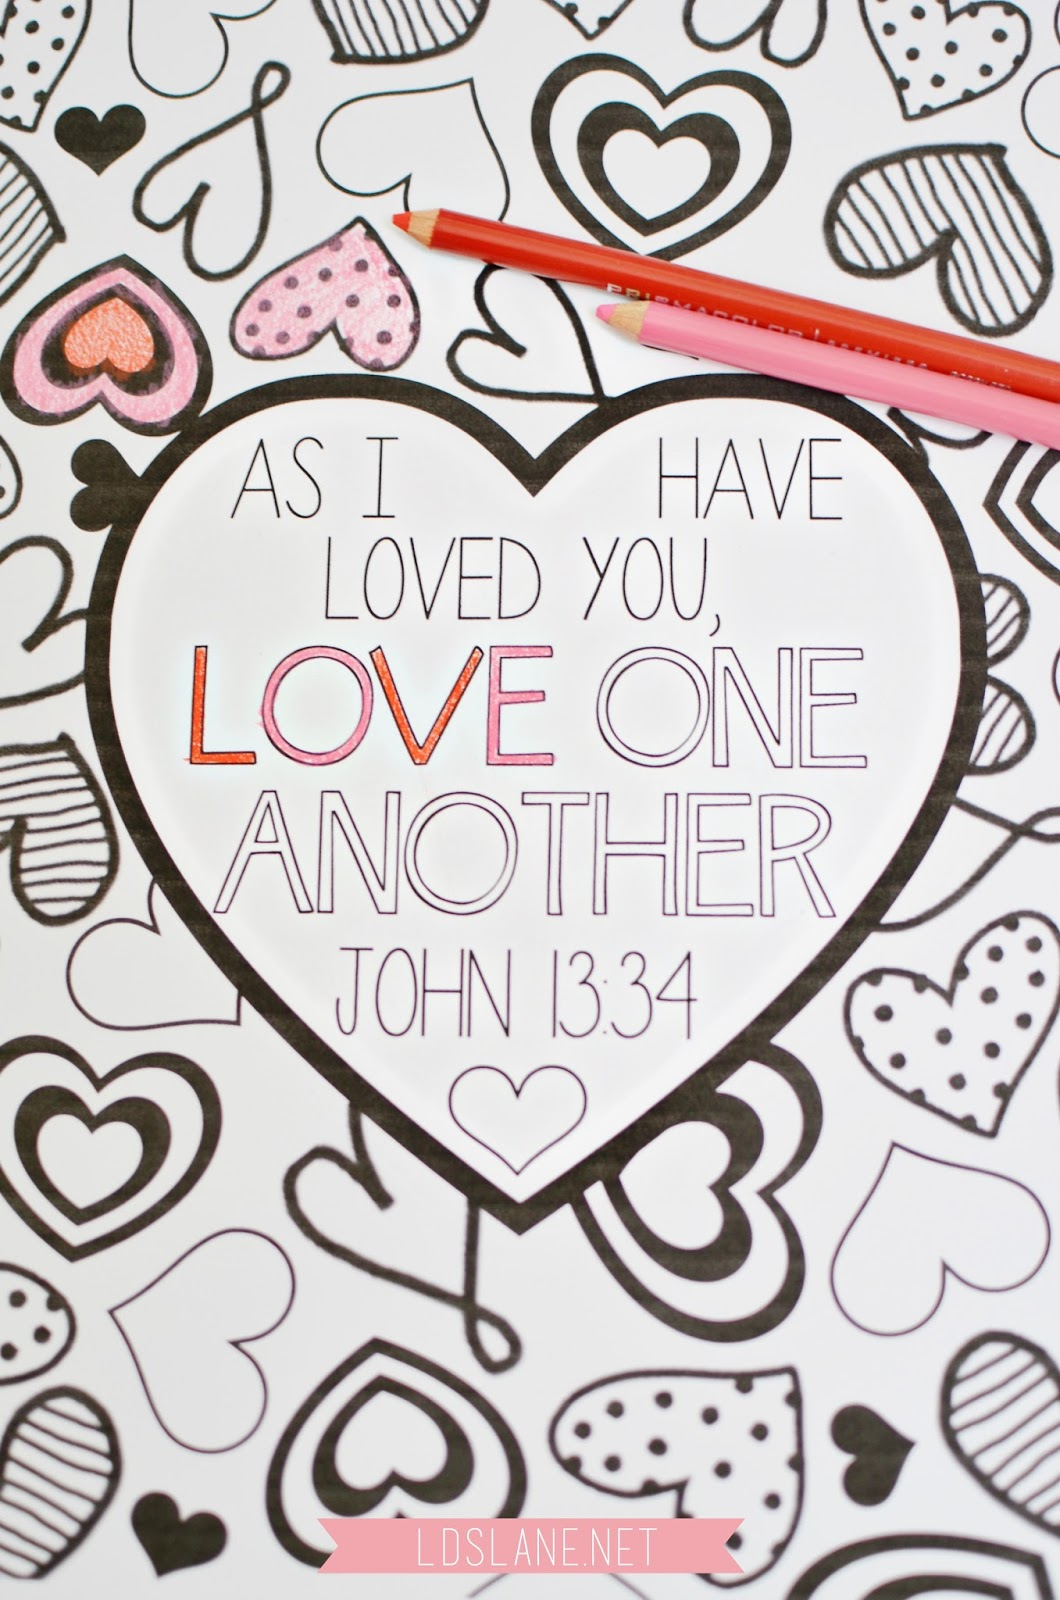 Clever image with regard to love one another printable